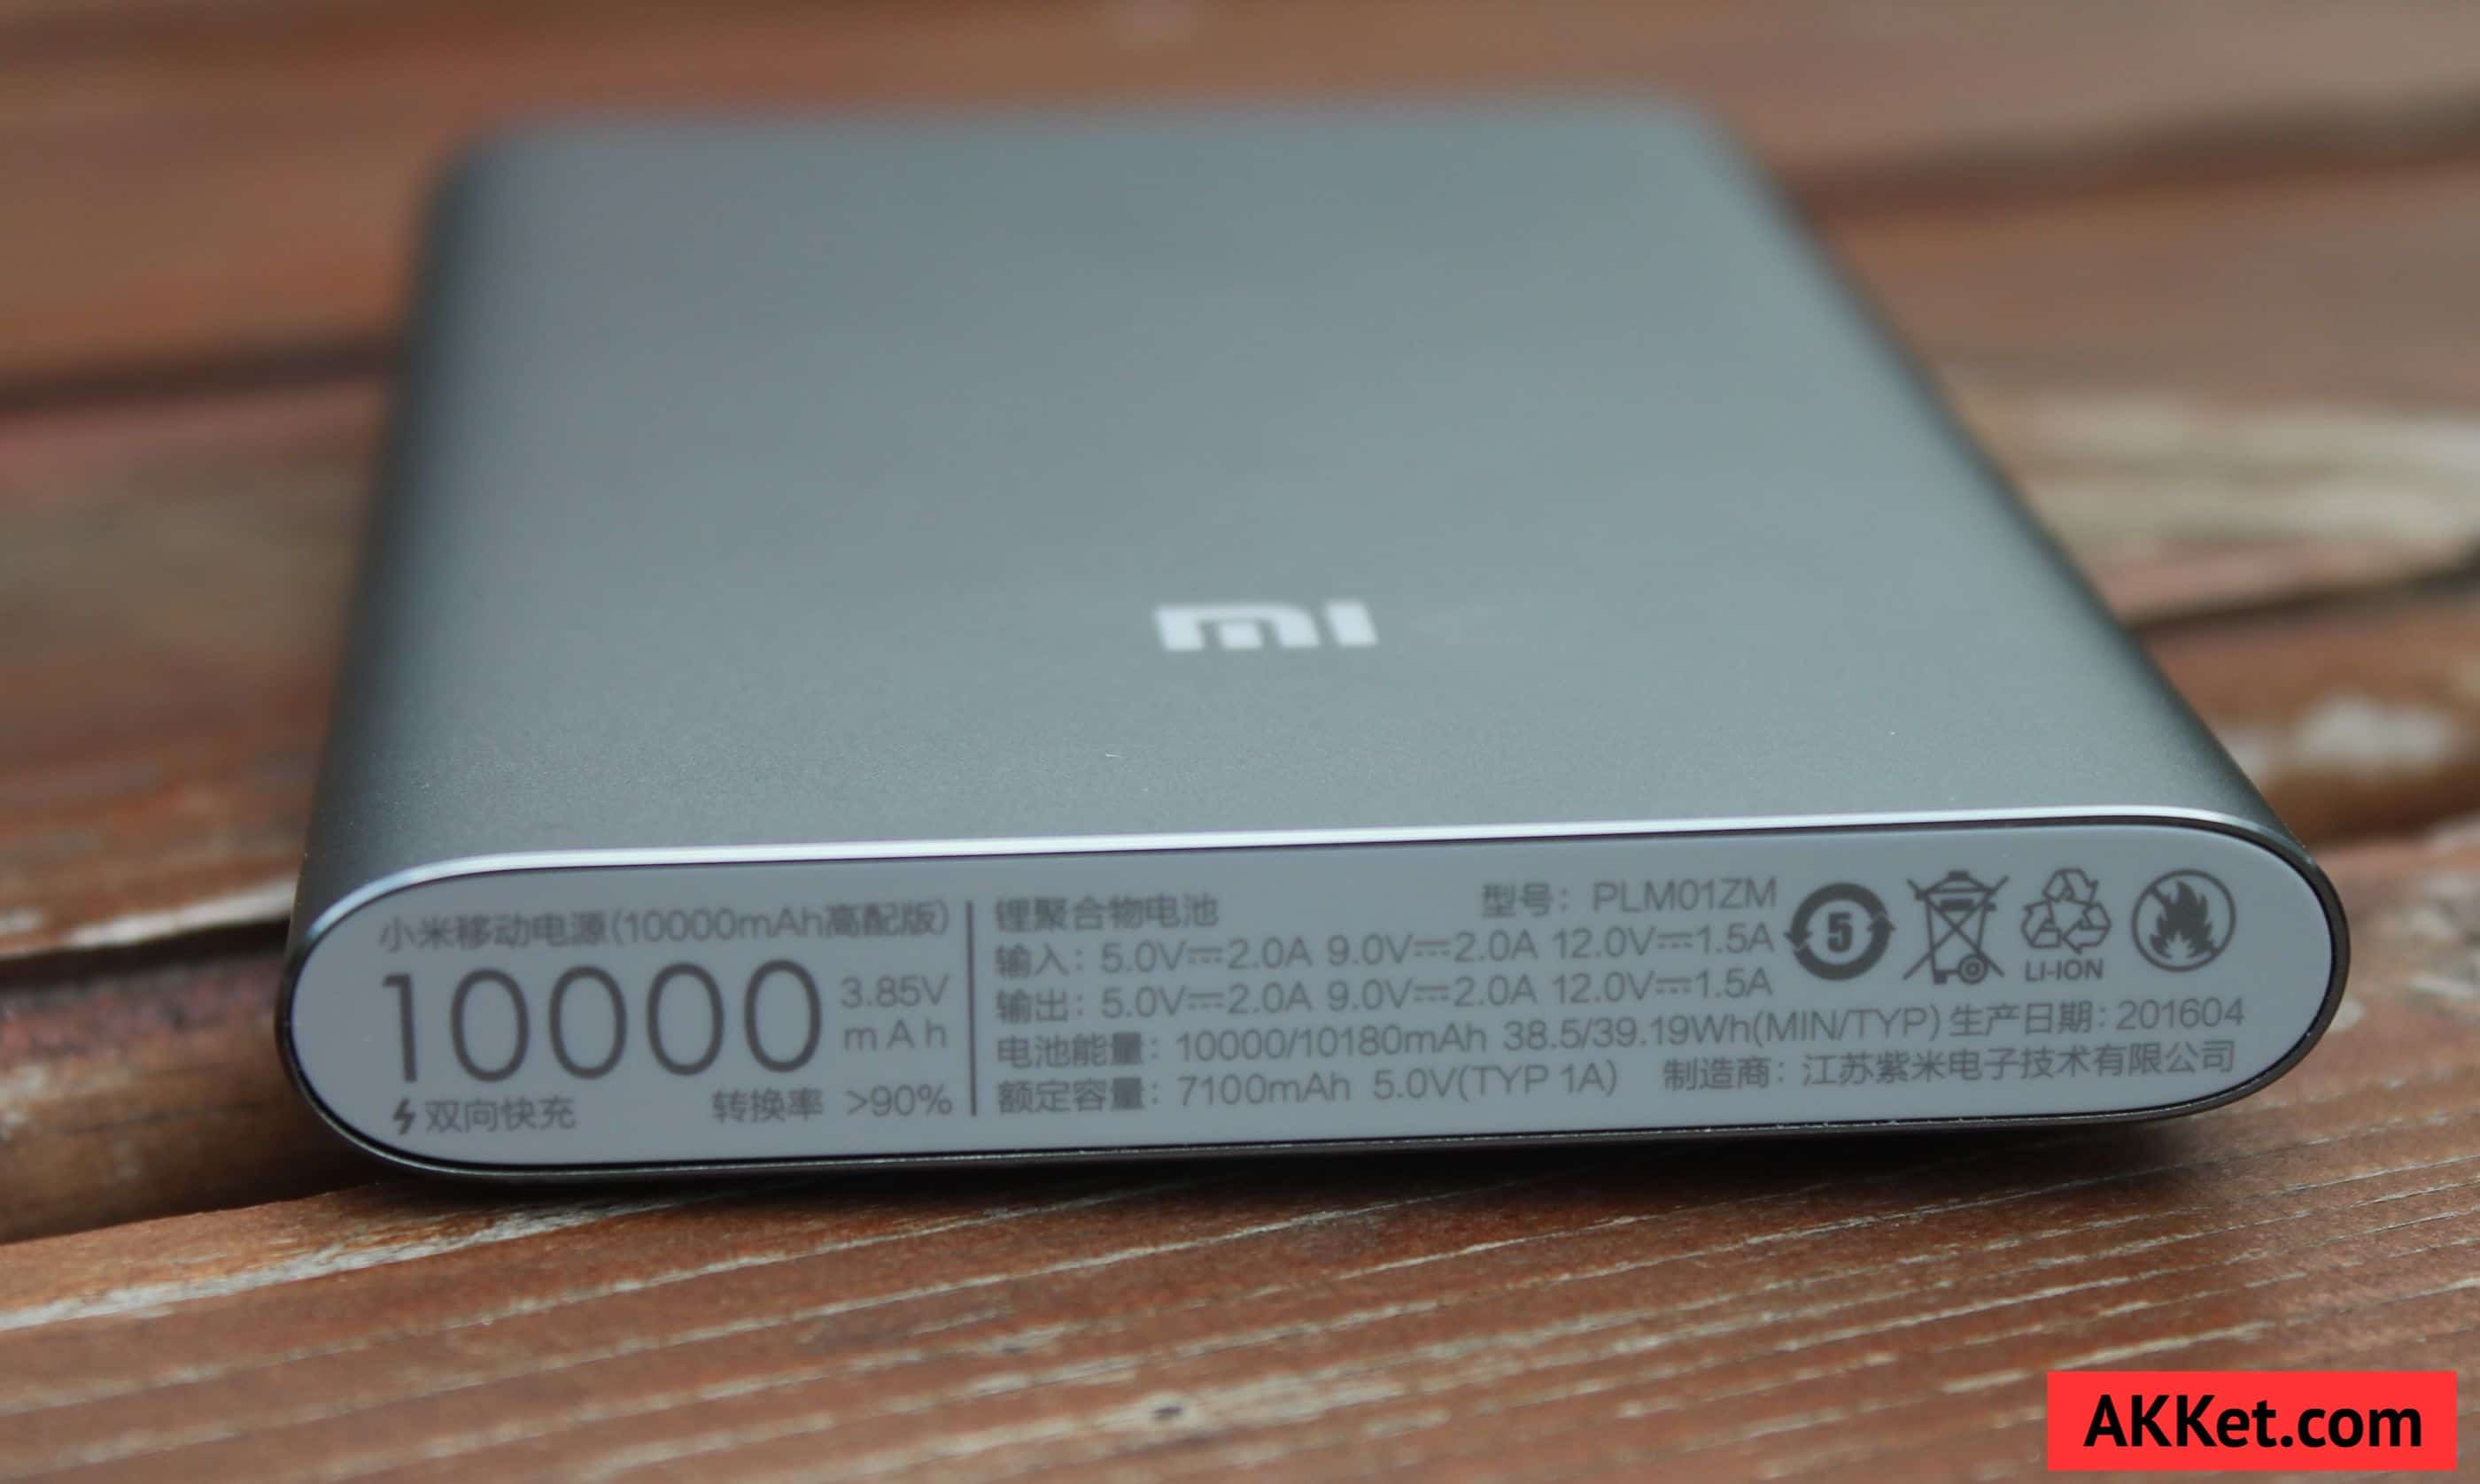 Xiaomi Mi Power Bank Pro 10000 мАч review photo 20